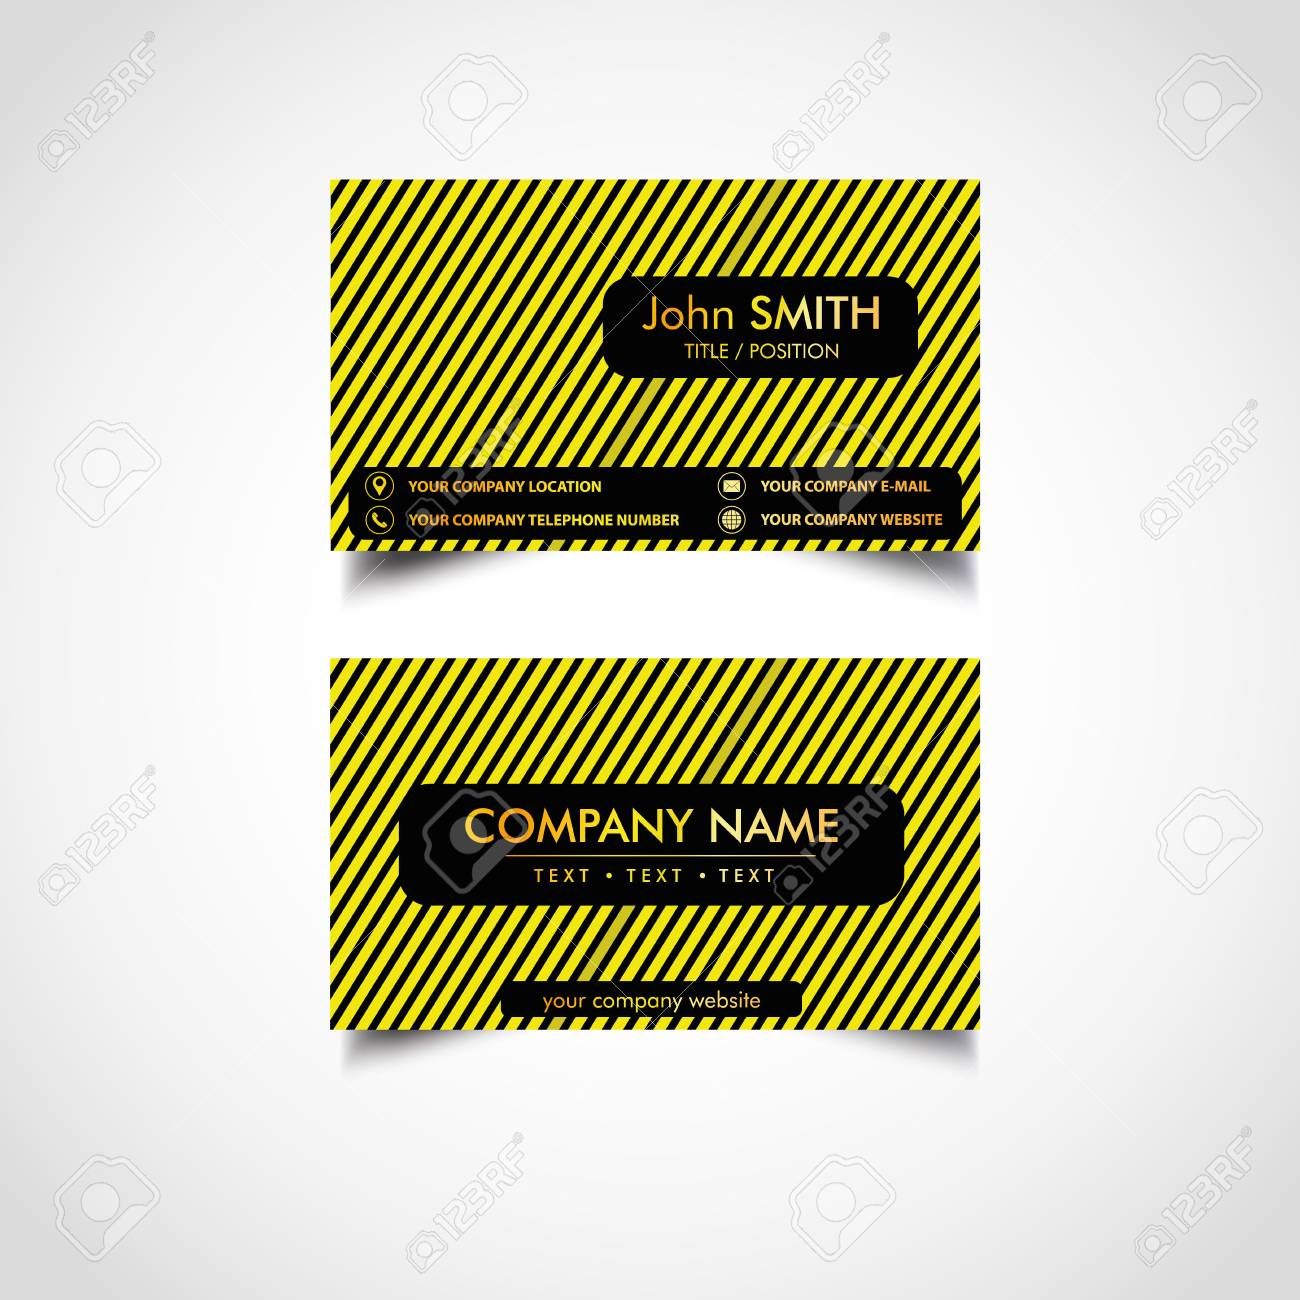 Golden business card templates design vector illustration royalty golden business card templates design vector illustration stock vector 96106835 reheart Gallery